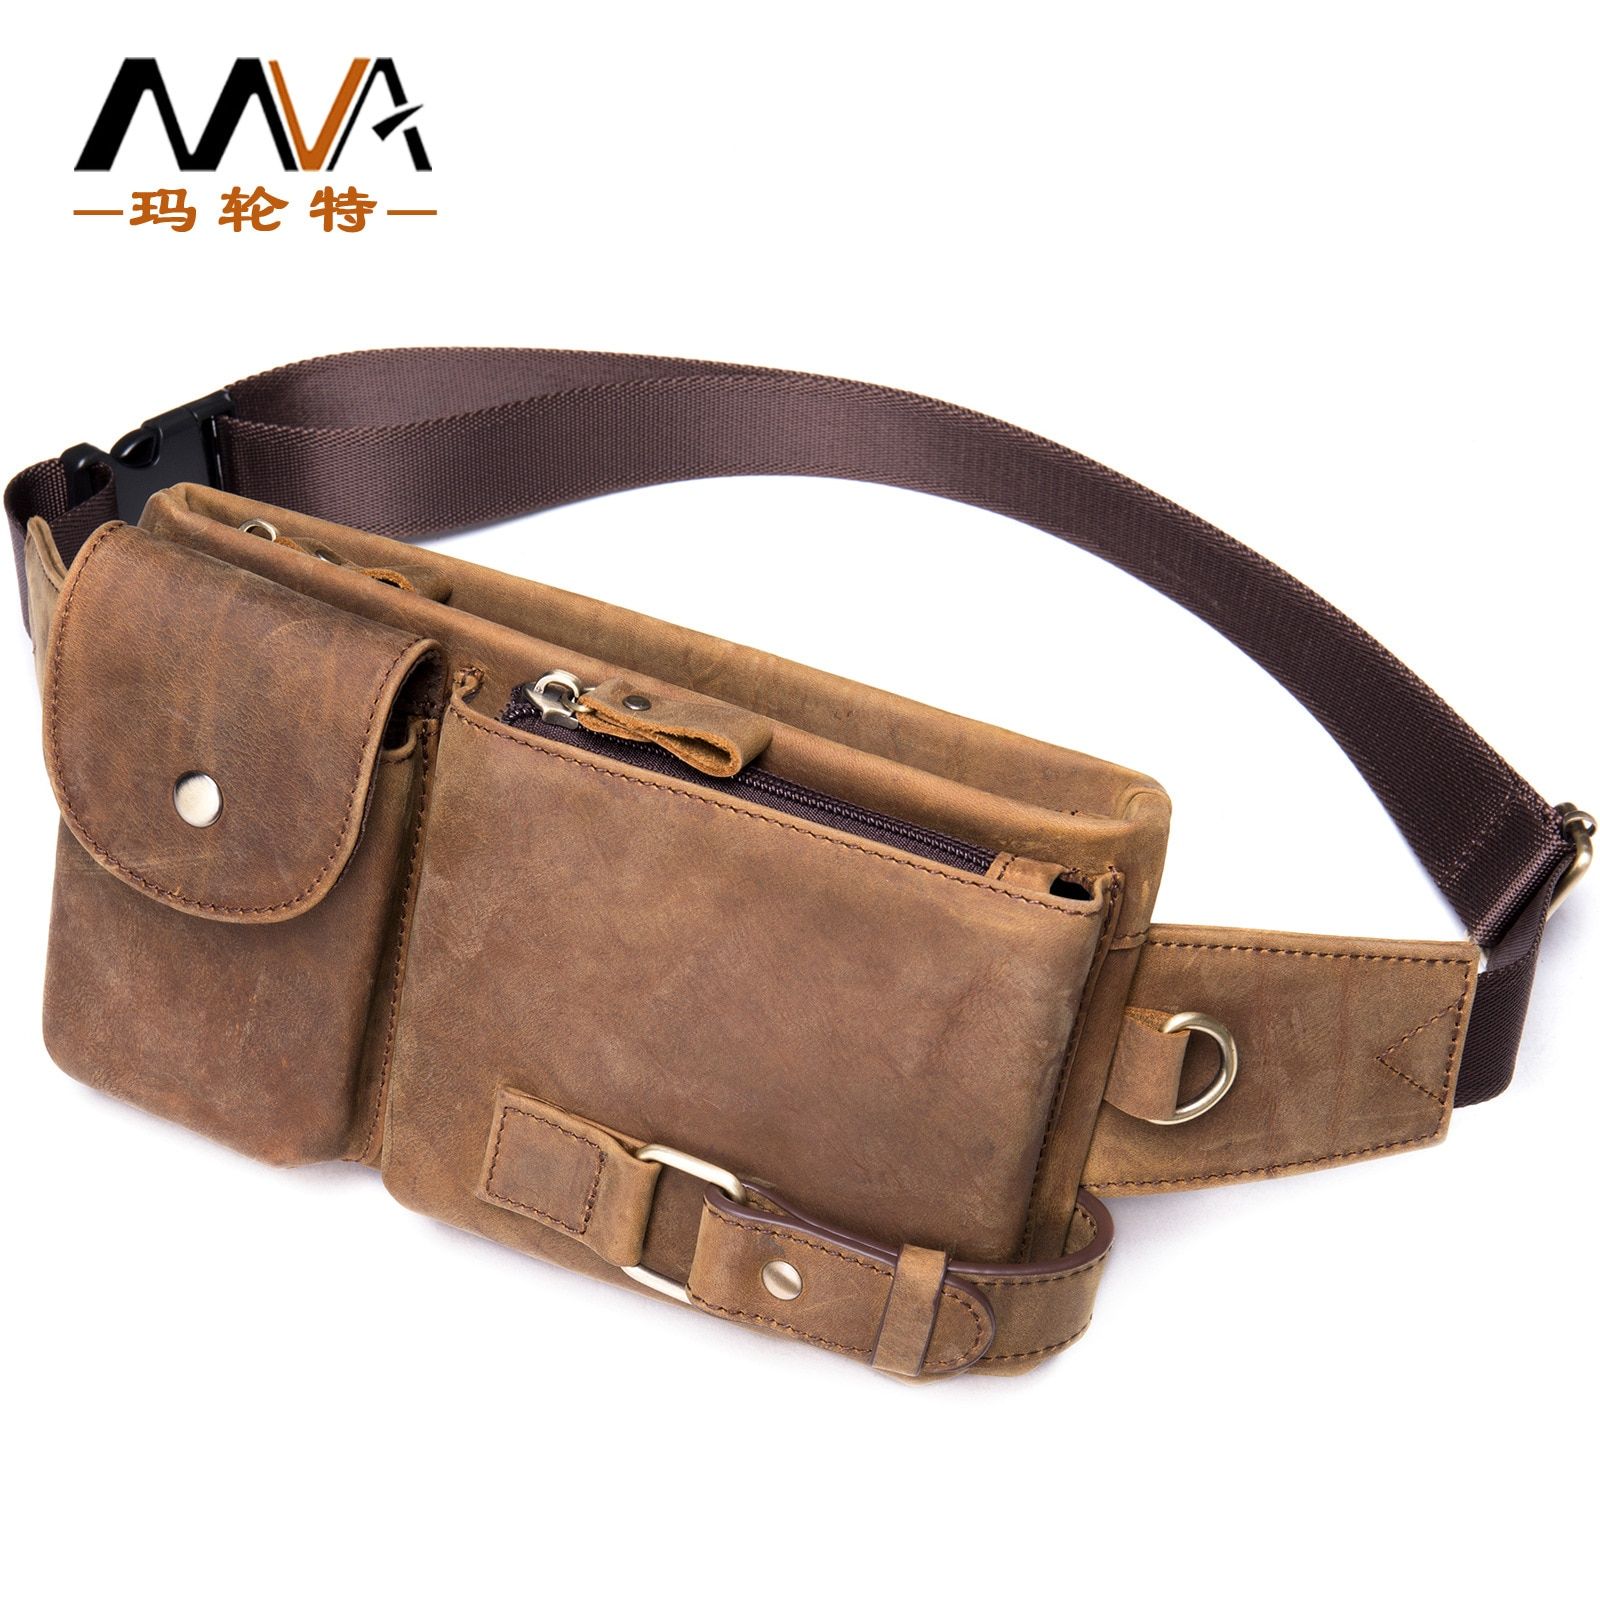 Waist Packs For Man Genuine Leather 2021 New Male Casual Vintage Fashion Mobile Travel Waist Pack Bags